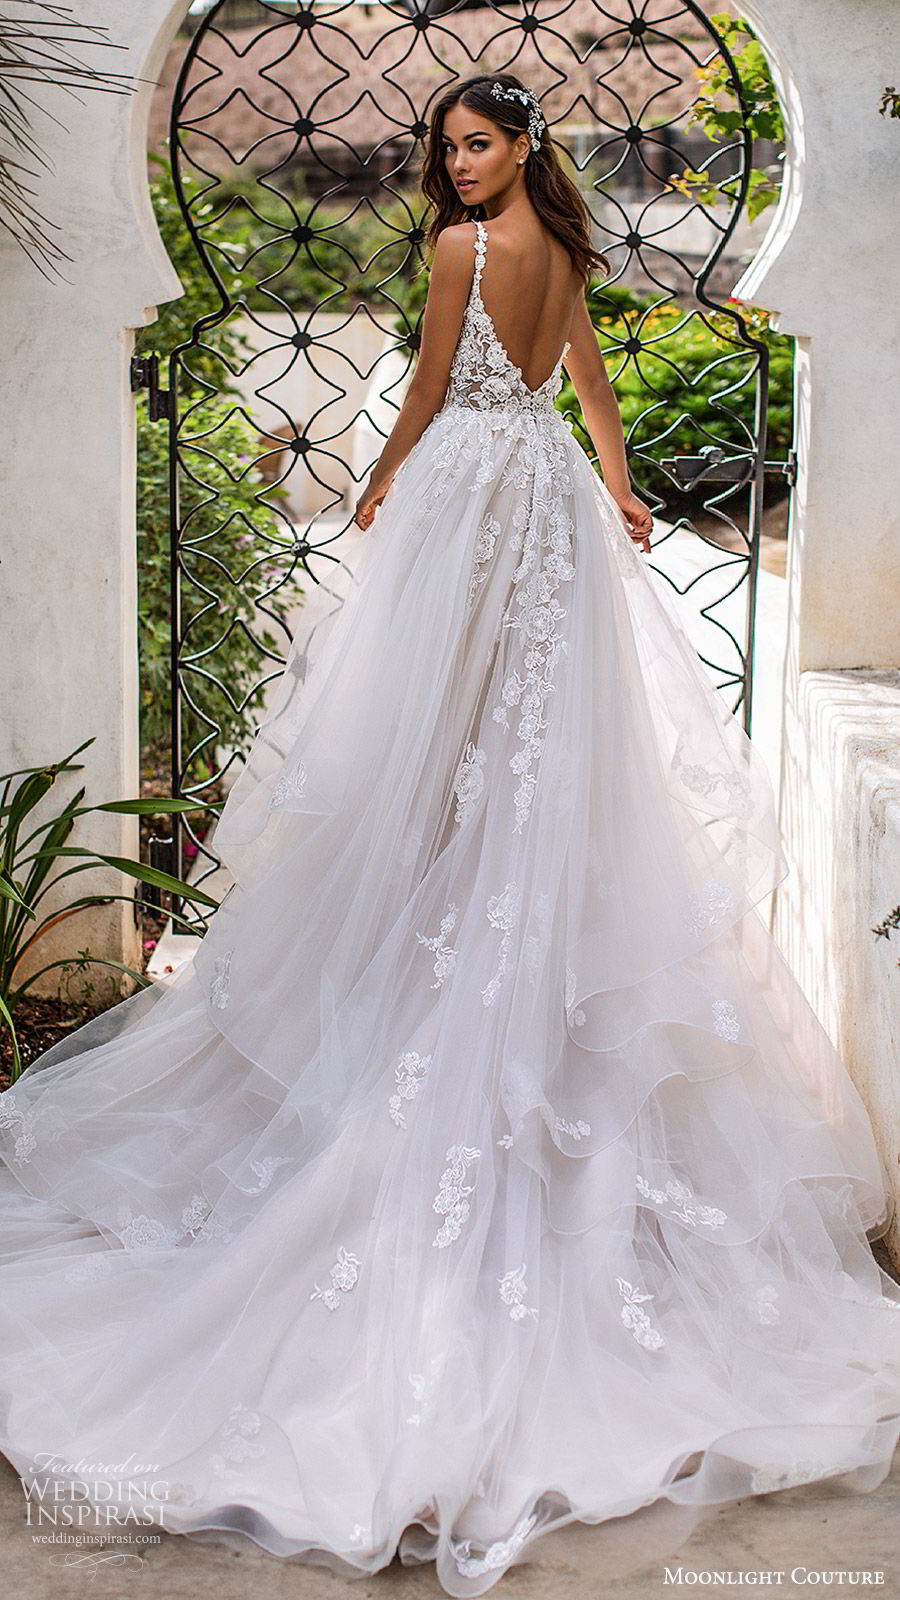 moonlight couture fall 2019 bridal sleeveless lace straps sweetheart neckline embellished bodice a line ball gown wedding dress (1) romantic princess tiered skirt chapel train blush bv